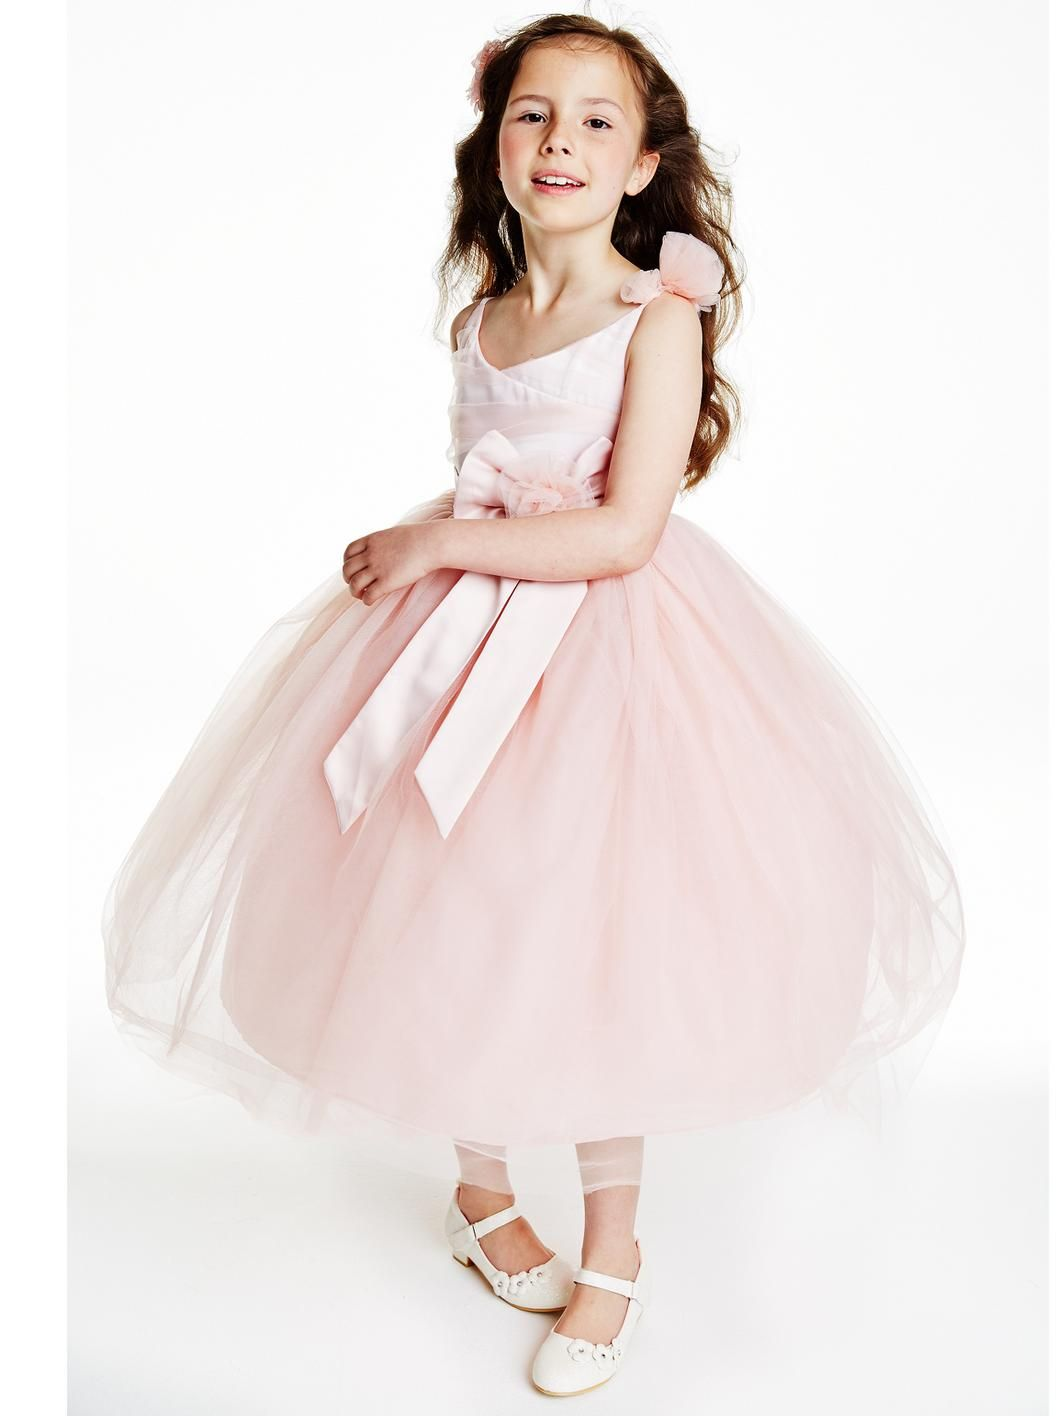 Girls corsage tutu dress 5 16yrs httplittlewoods this beautiful corsage tutu dress is from littlewoods ombrellifo Image collections